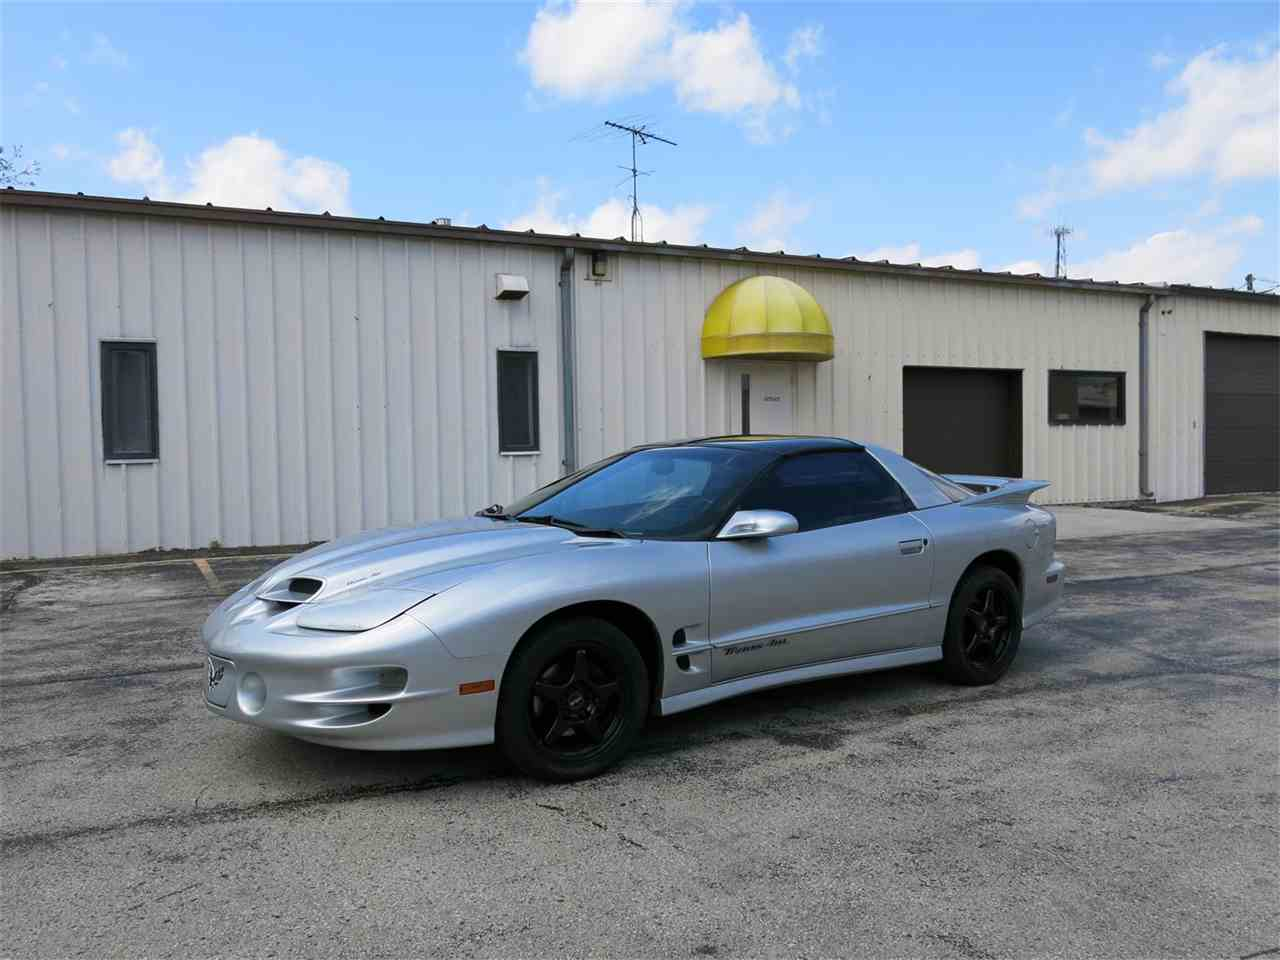 2000 pontiac firebird trans am ws6 for sale cc 998662. Black Bedroom Furniture Sets. Home Design Ideas